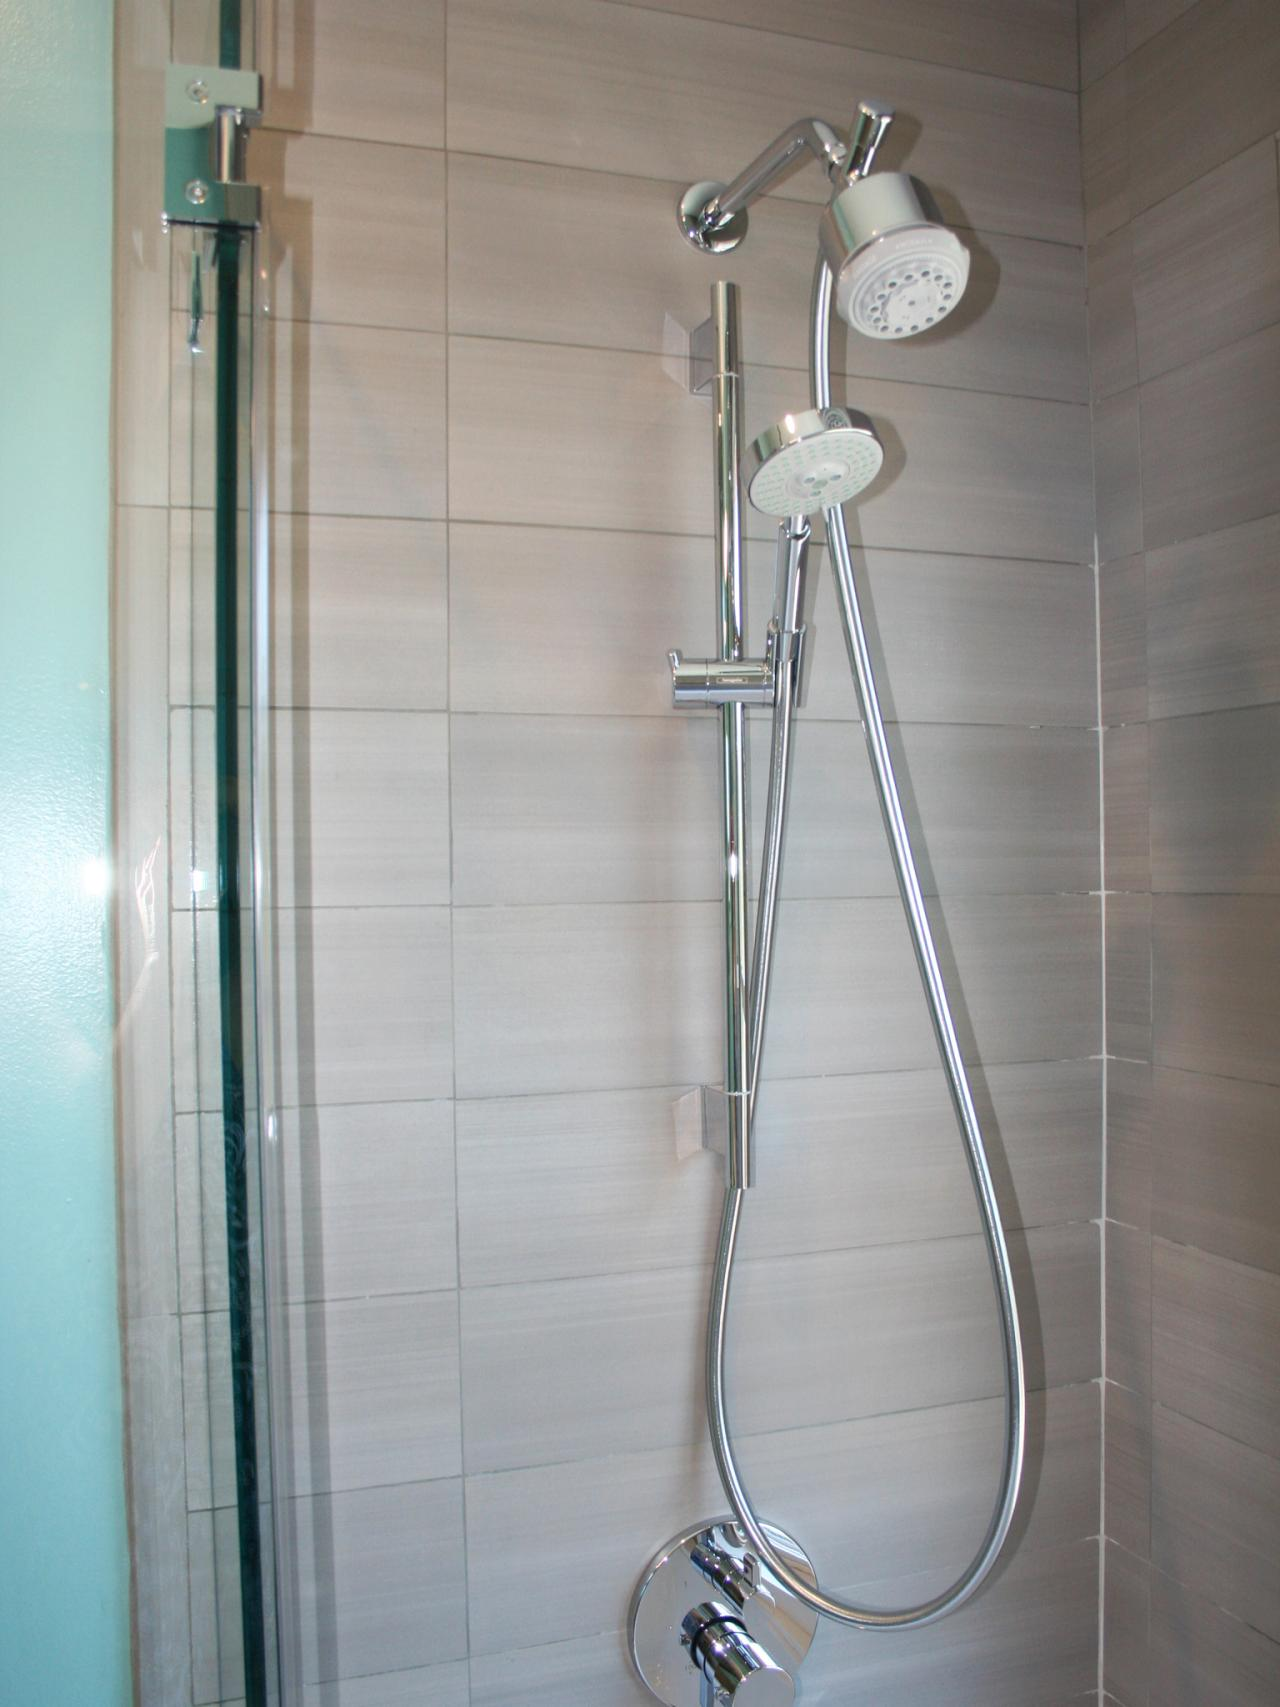 shower systems with rain head. Dual Head Shower System Choosing Bathroom Fixtures  HGTV